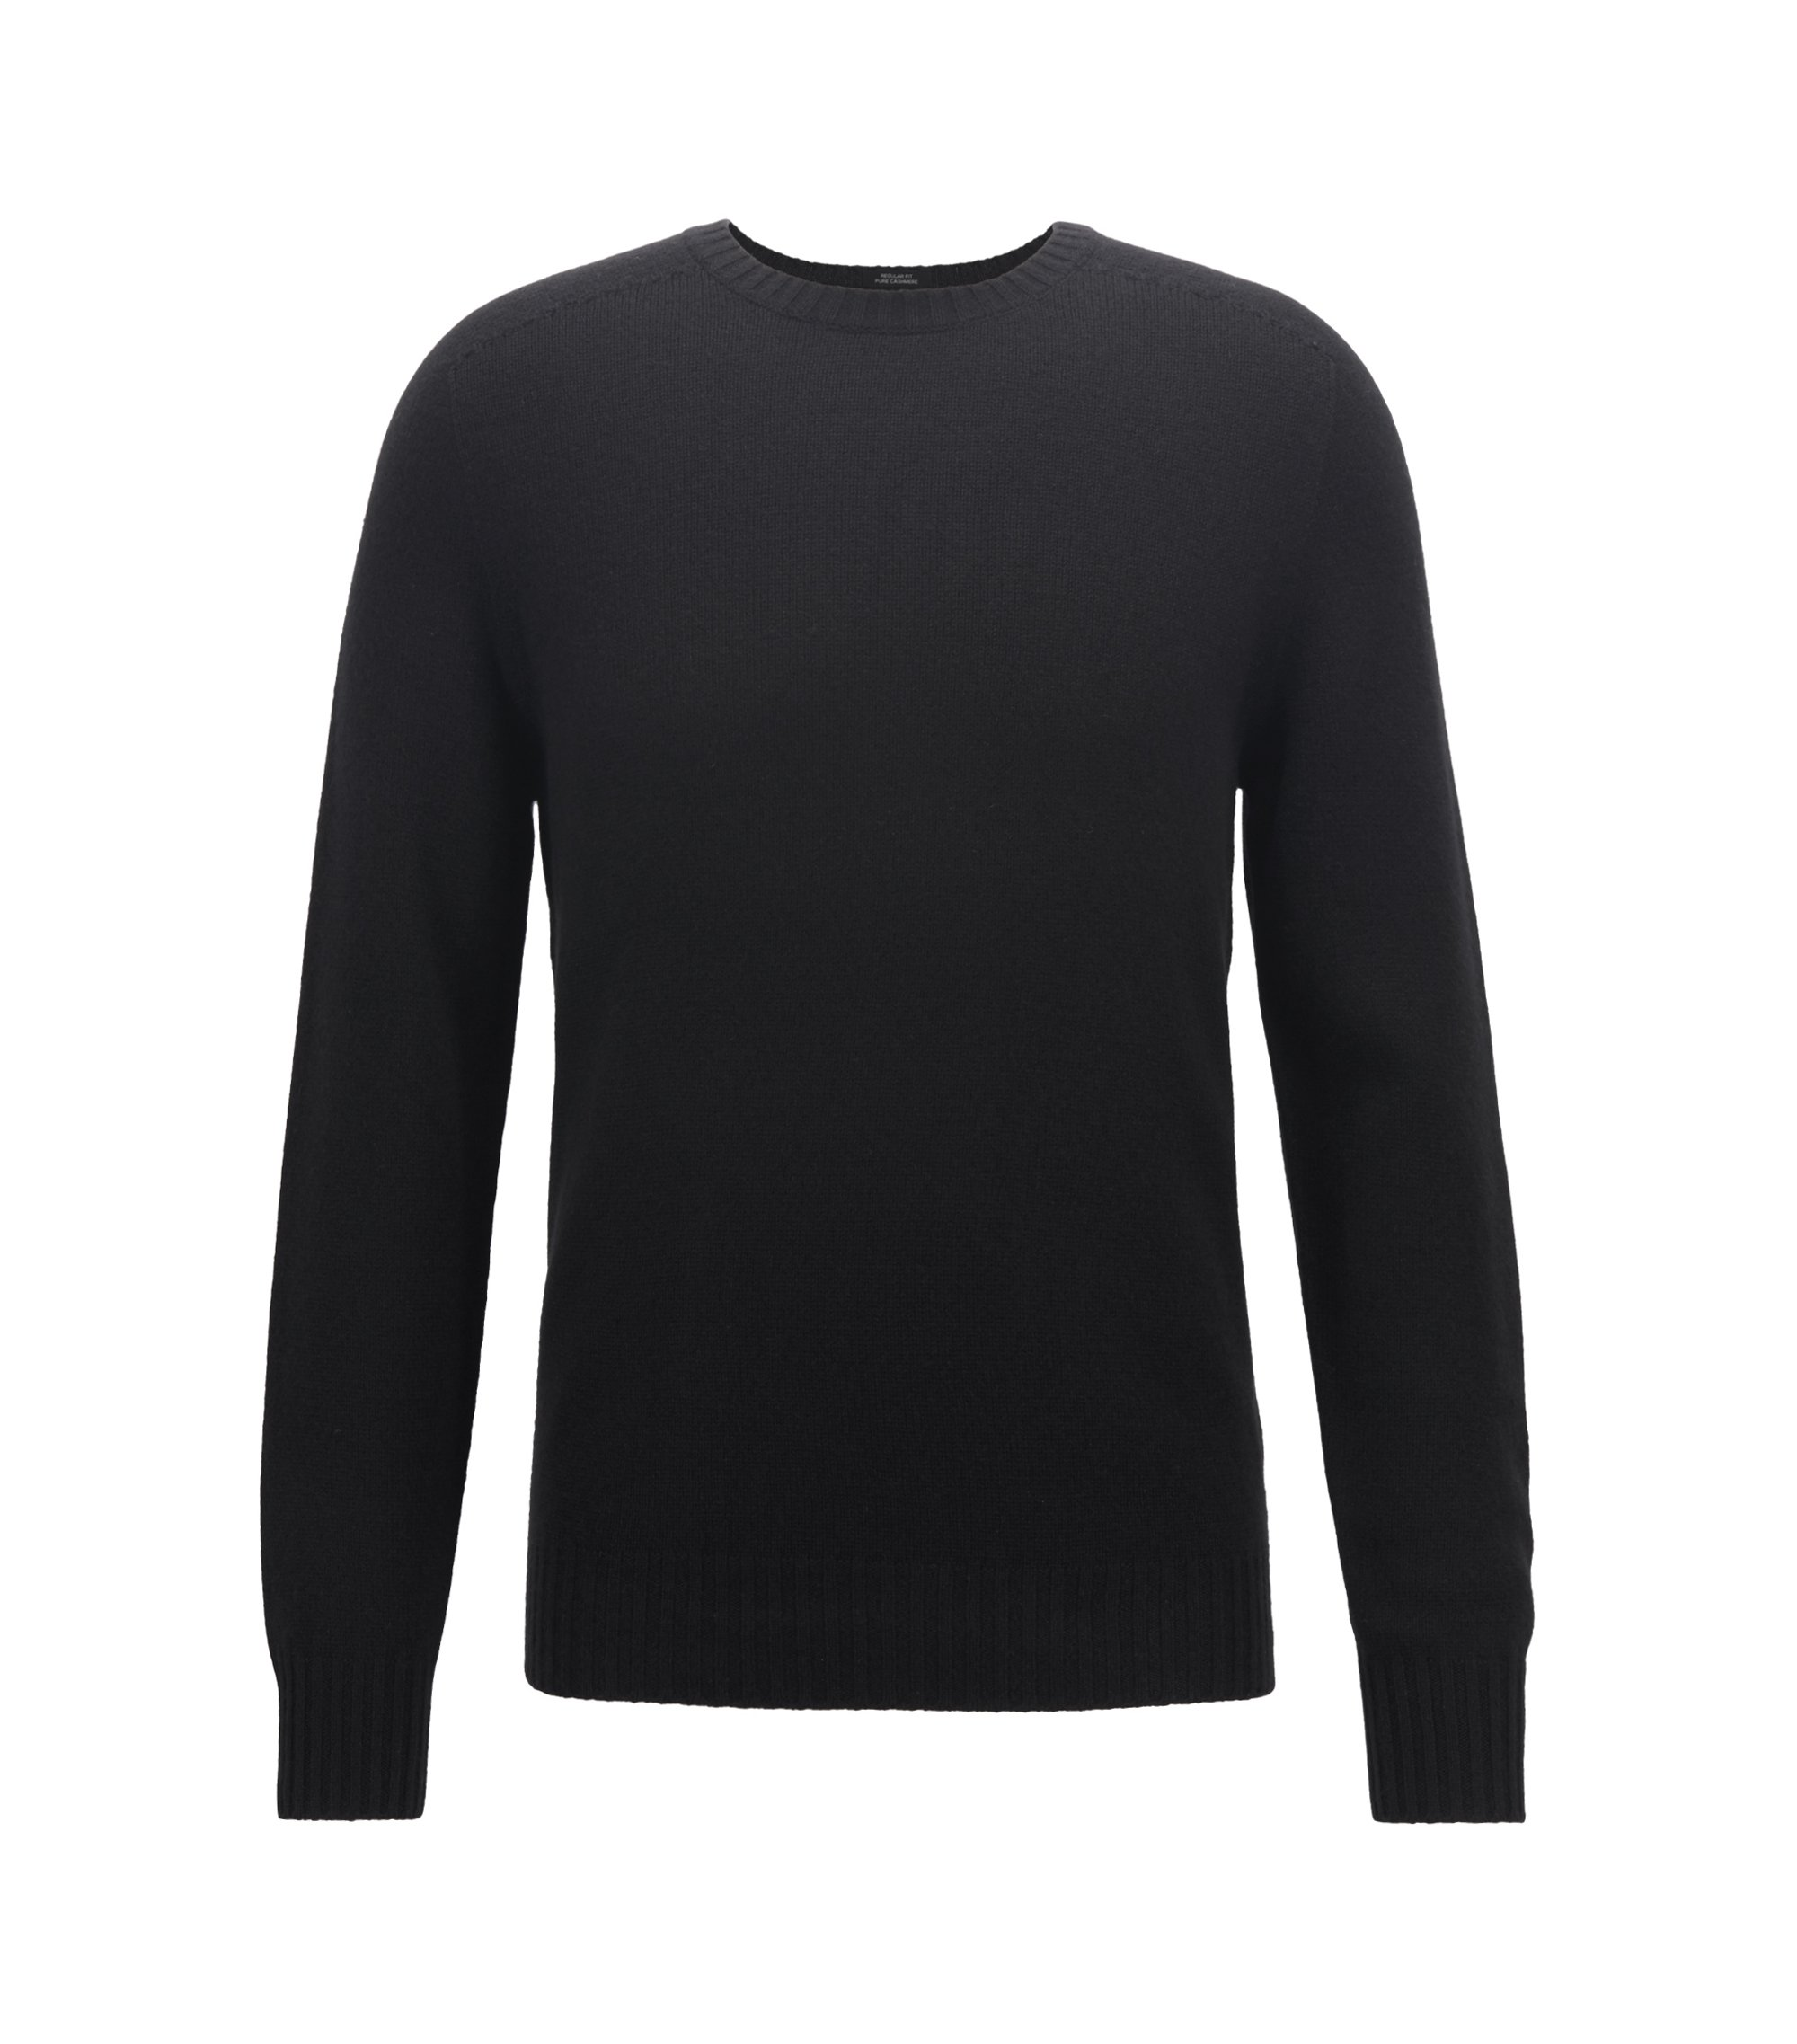 Cashmere sweater with seam-free design, Black